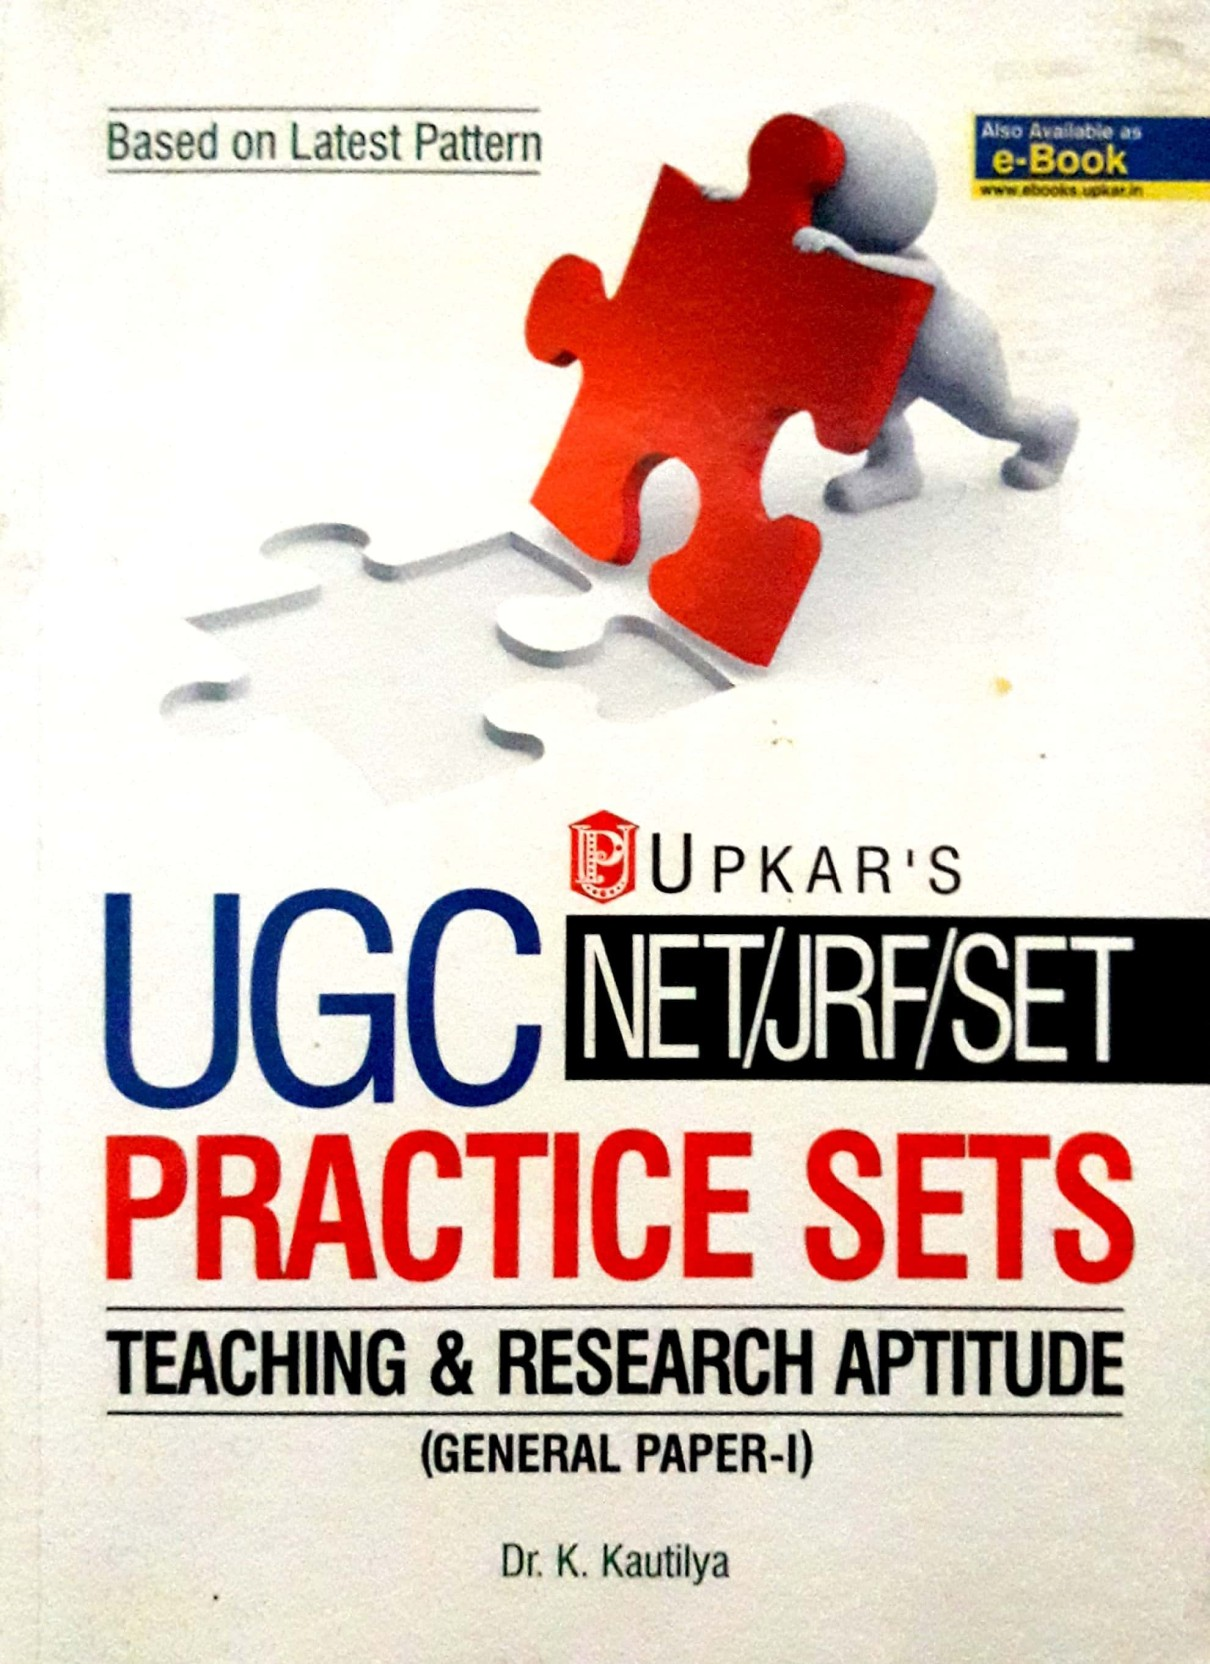 Teaching And Research Aptitude Ebook